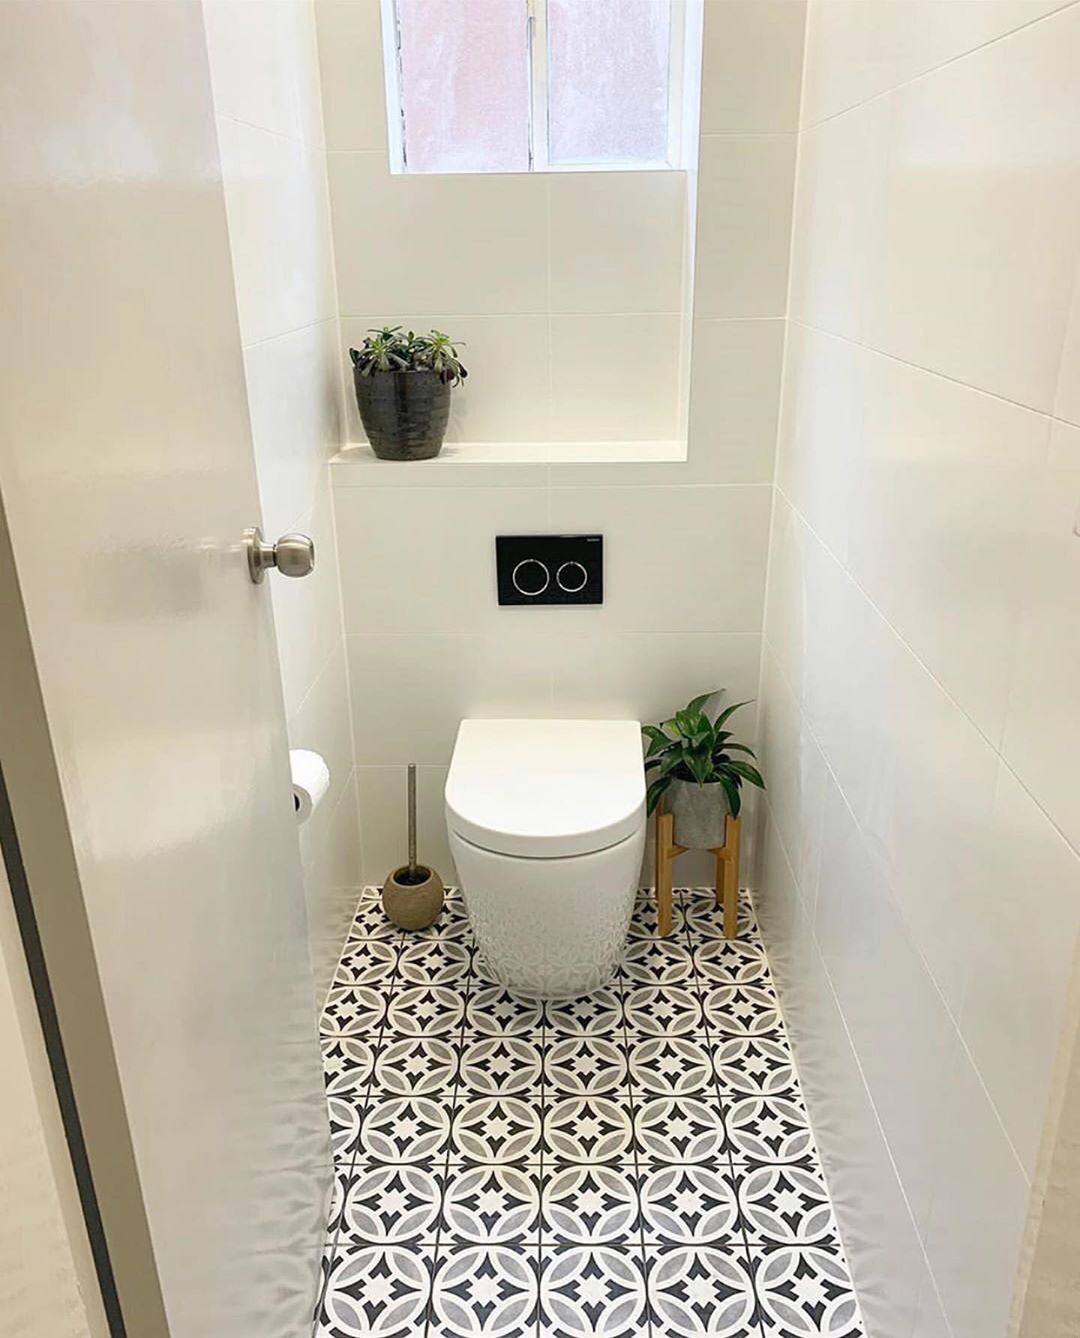 Decorated Small Water Courses Suitable For Apartments Very Sweet And Wall Shelves Better And More Bea Bathroom Remodel Master Bathrooms Remodel Wall Shelves